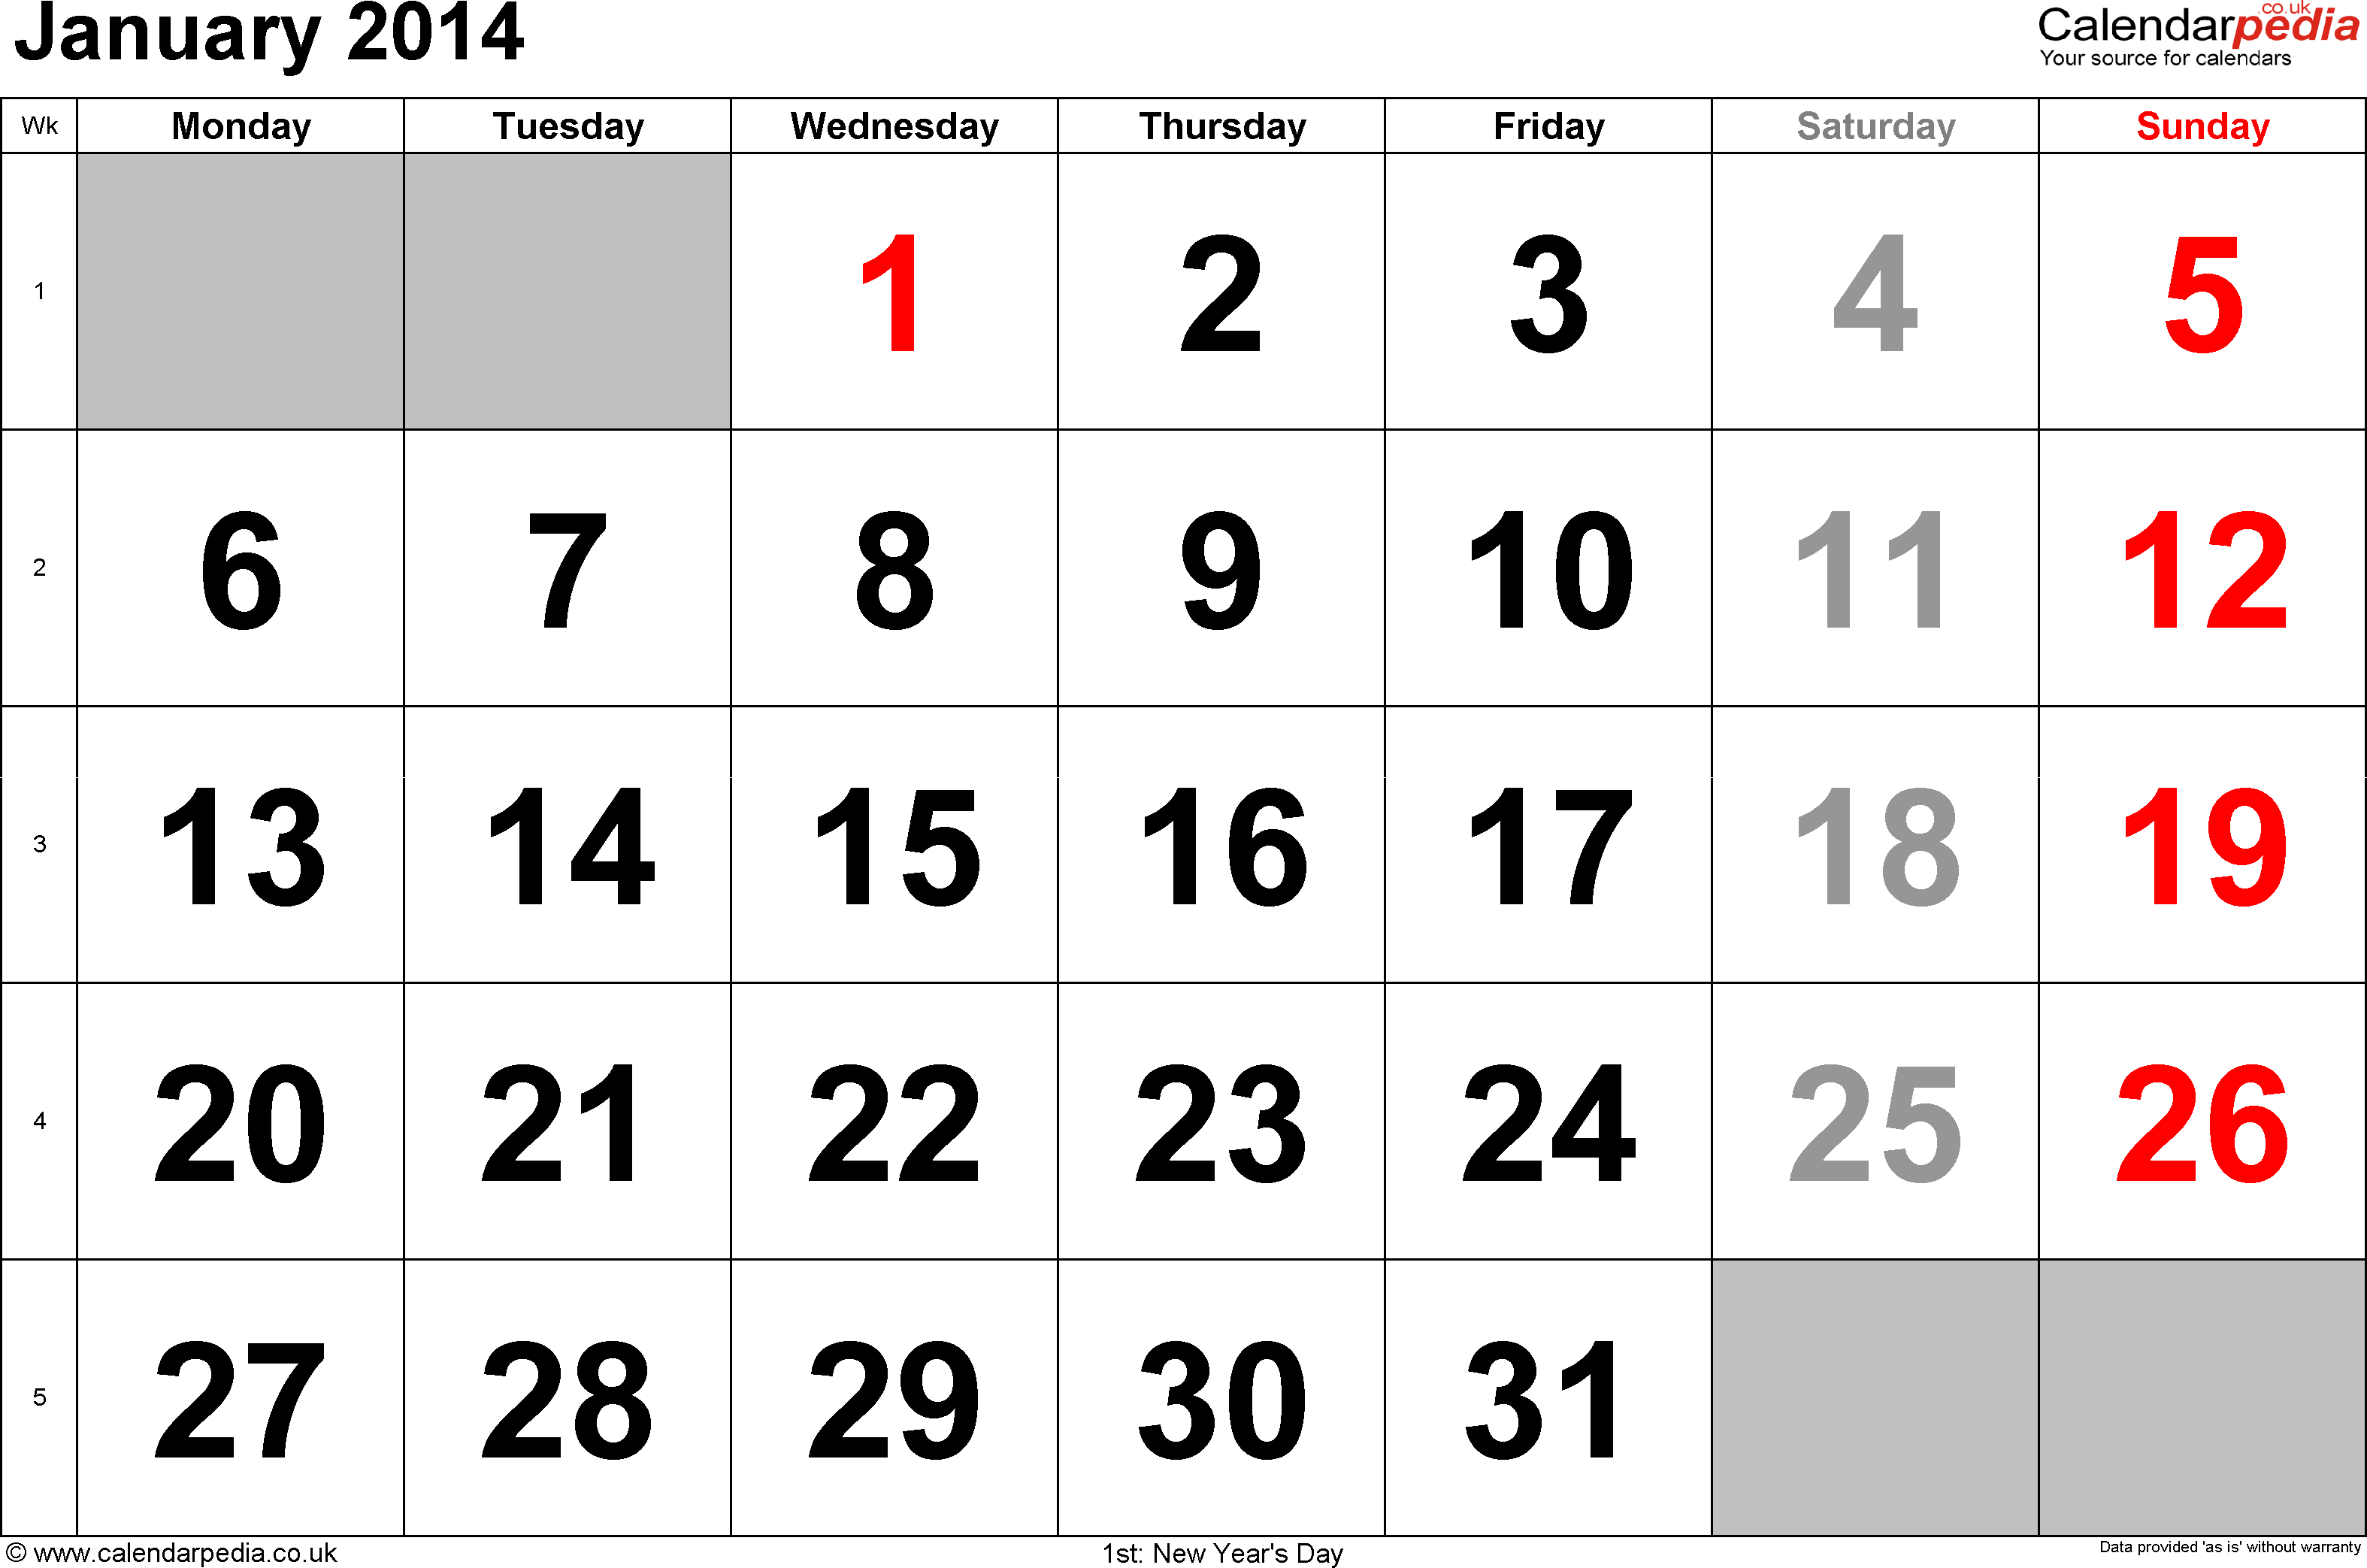 Calendar January 2014, landscape orientation, large numerals, 1 page, with UK bank